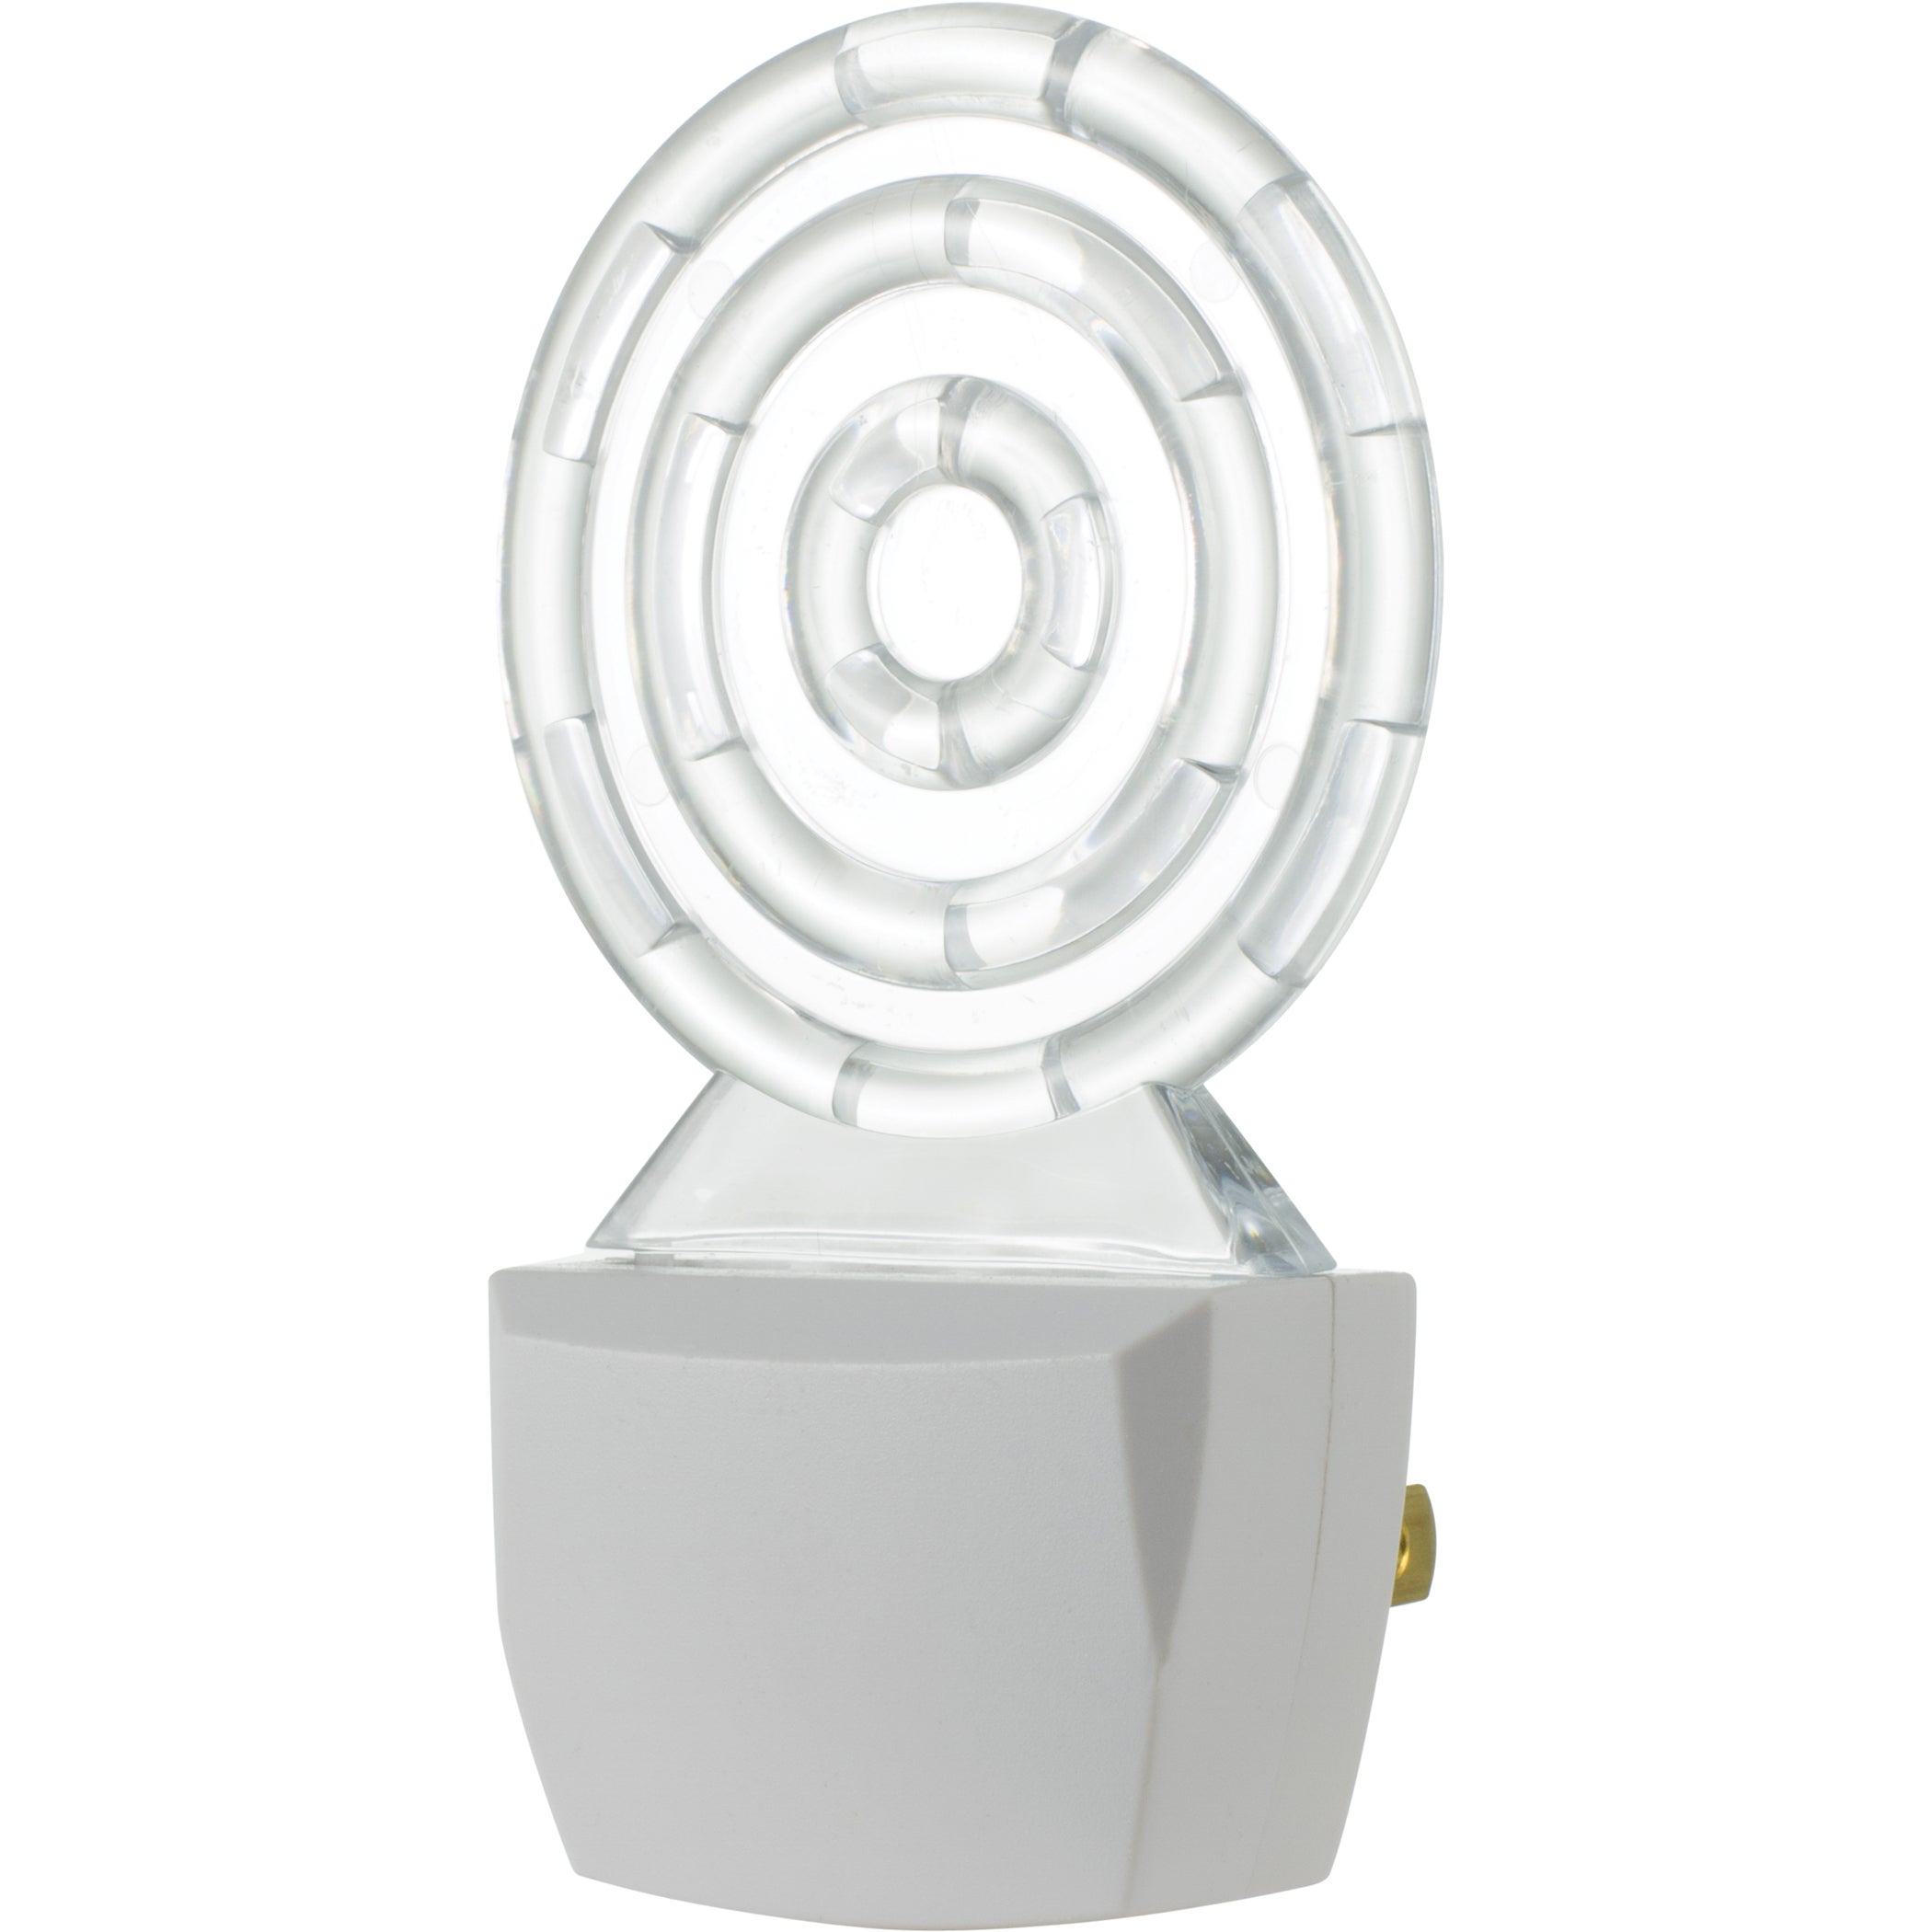 GE Jasco 10934 Blue LED Night Light (Lights), White (Glass)